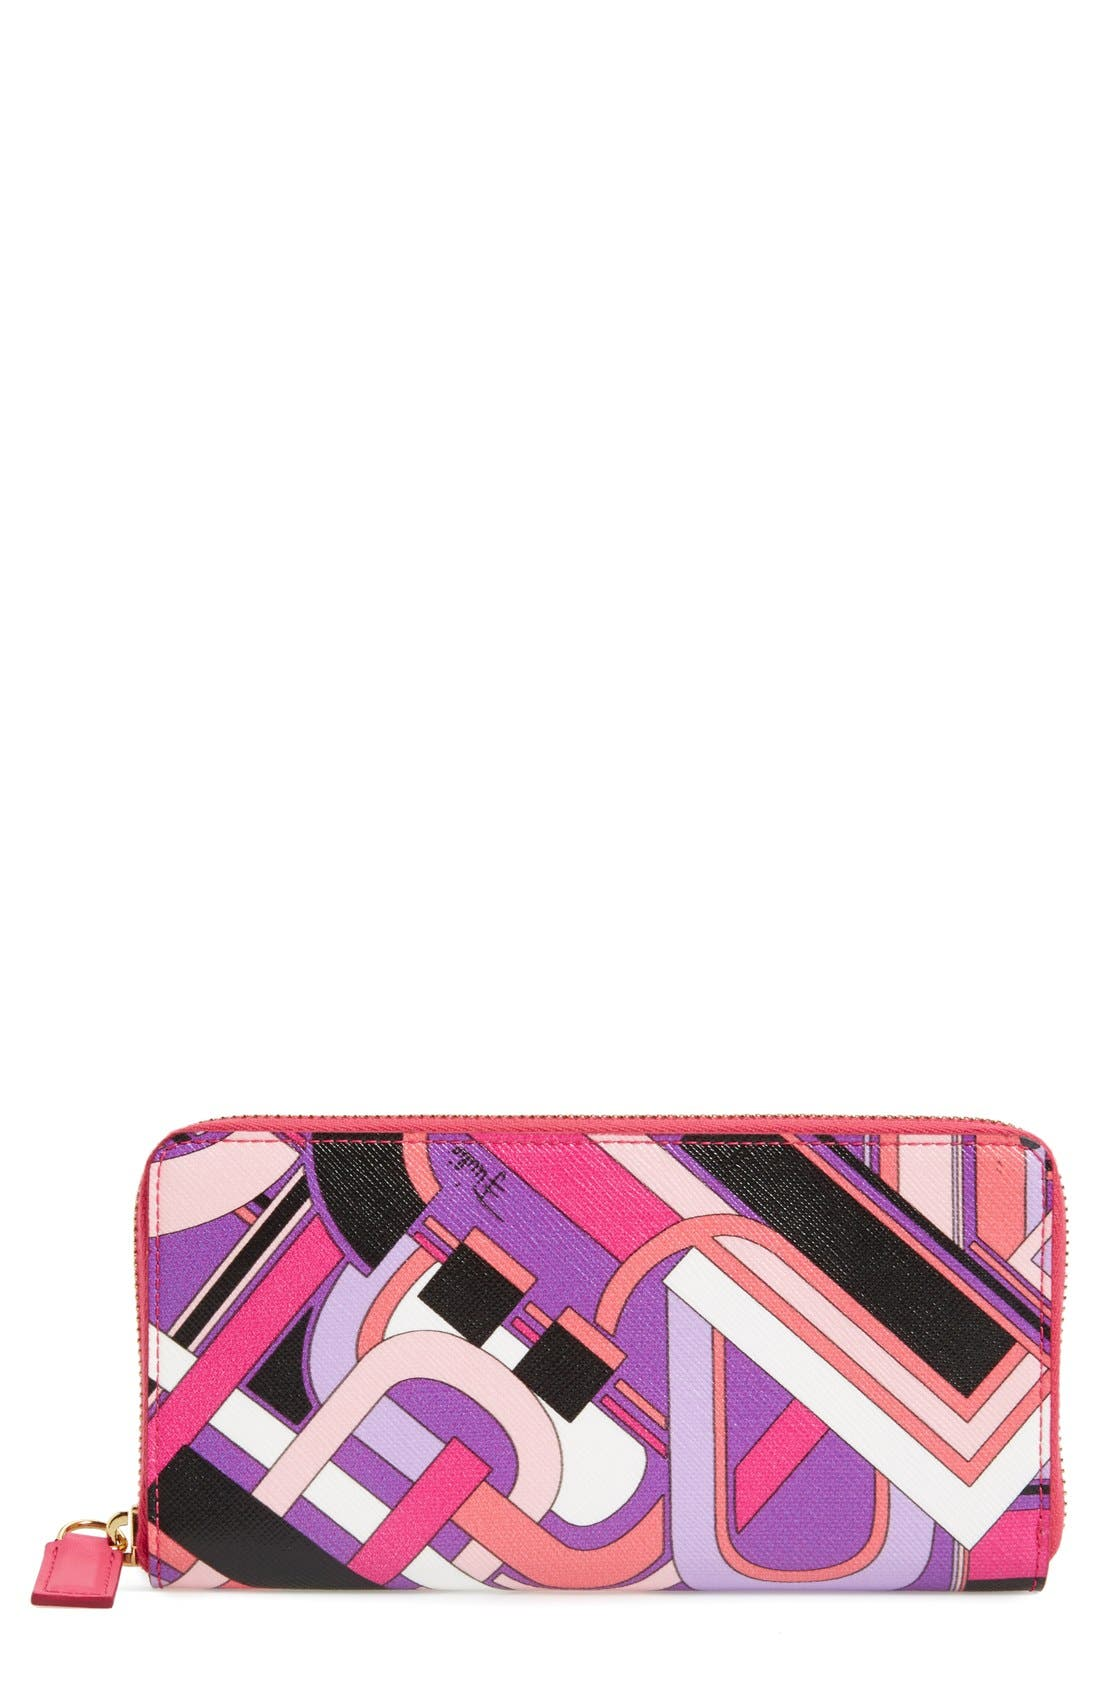 Main Image - Emilio Pucci Print Zip Around Wallet